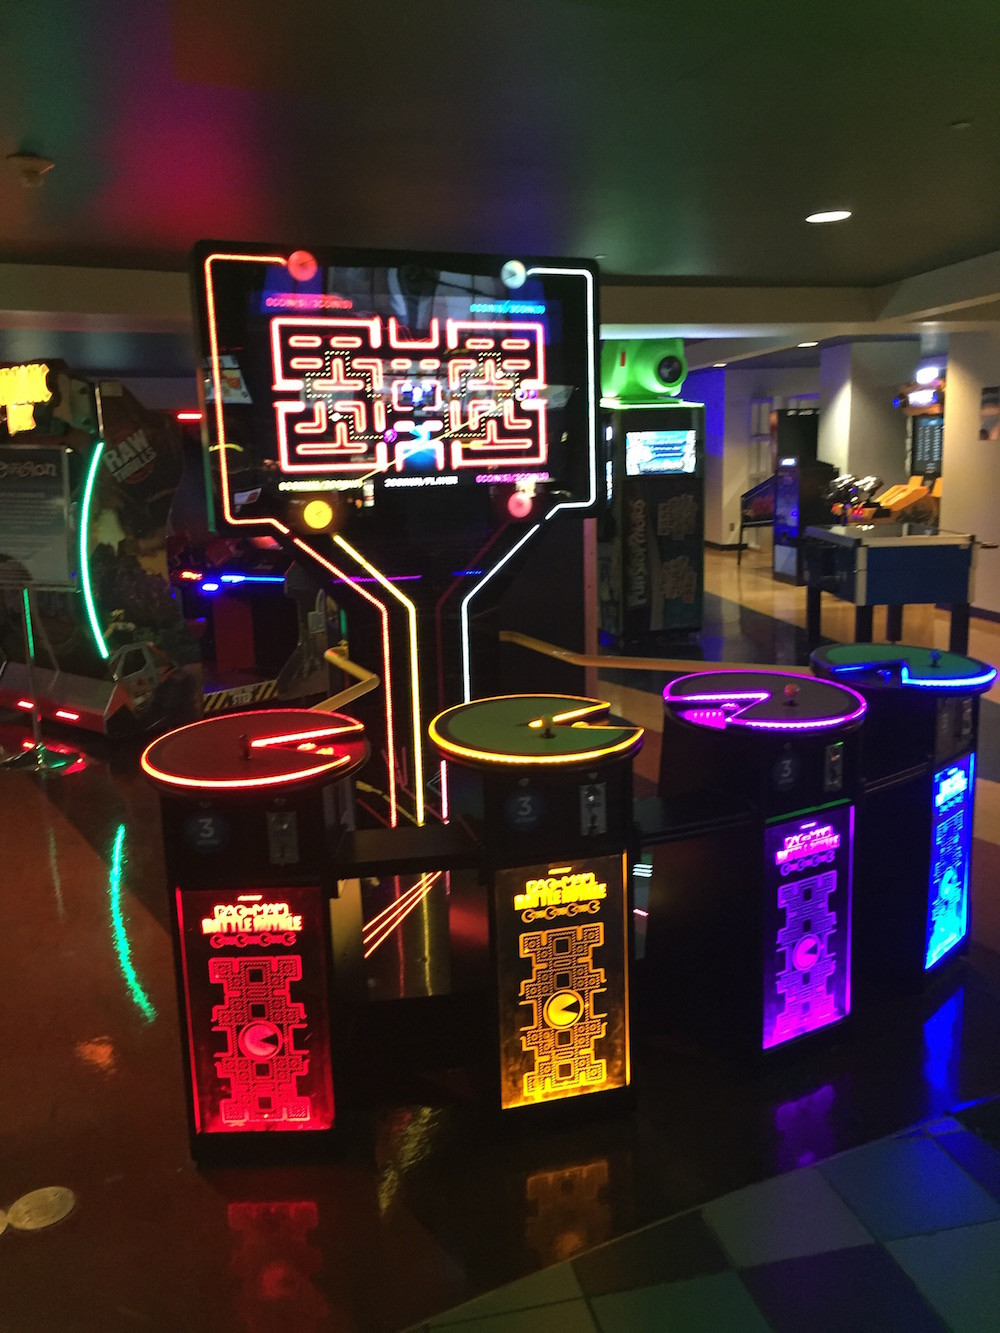 Image of MultiPlayer PacMan game